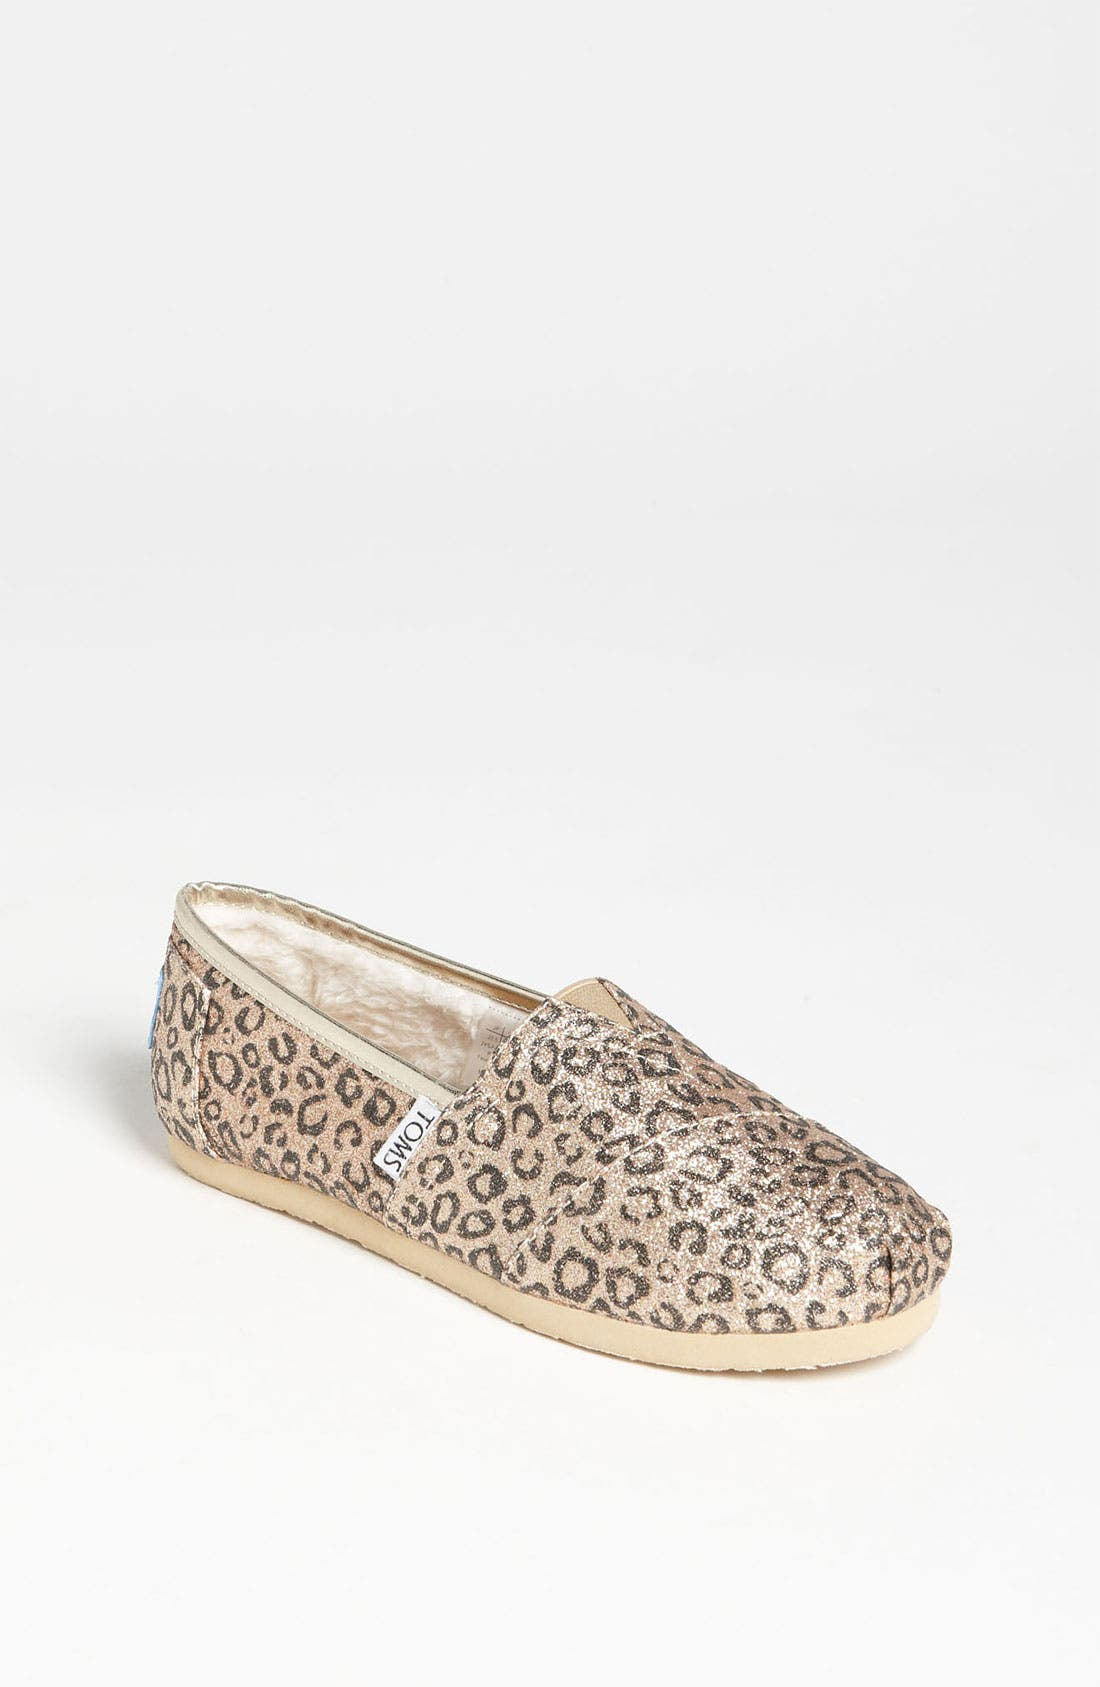 Main Image - TOMS 'Classic Youth - Glitter' Print Slip-On (Toddler, Little Kid & Big Kid) (Nordstrom Exclusive)